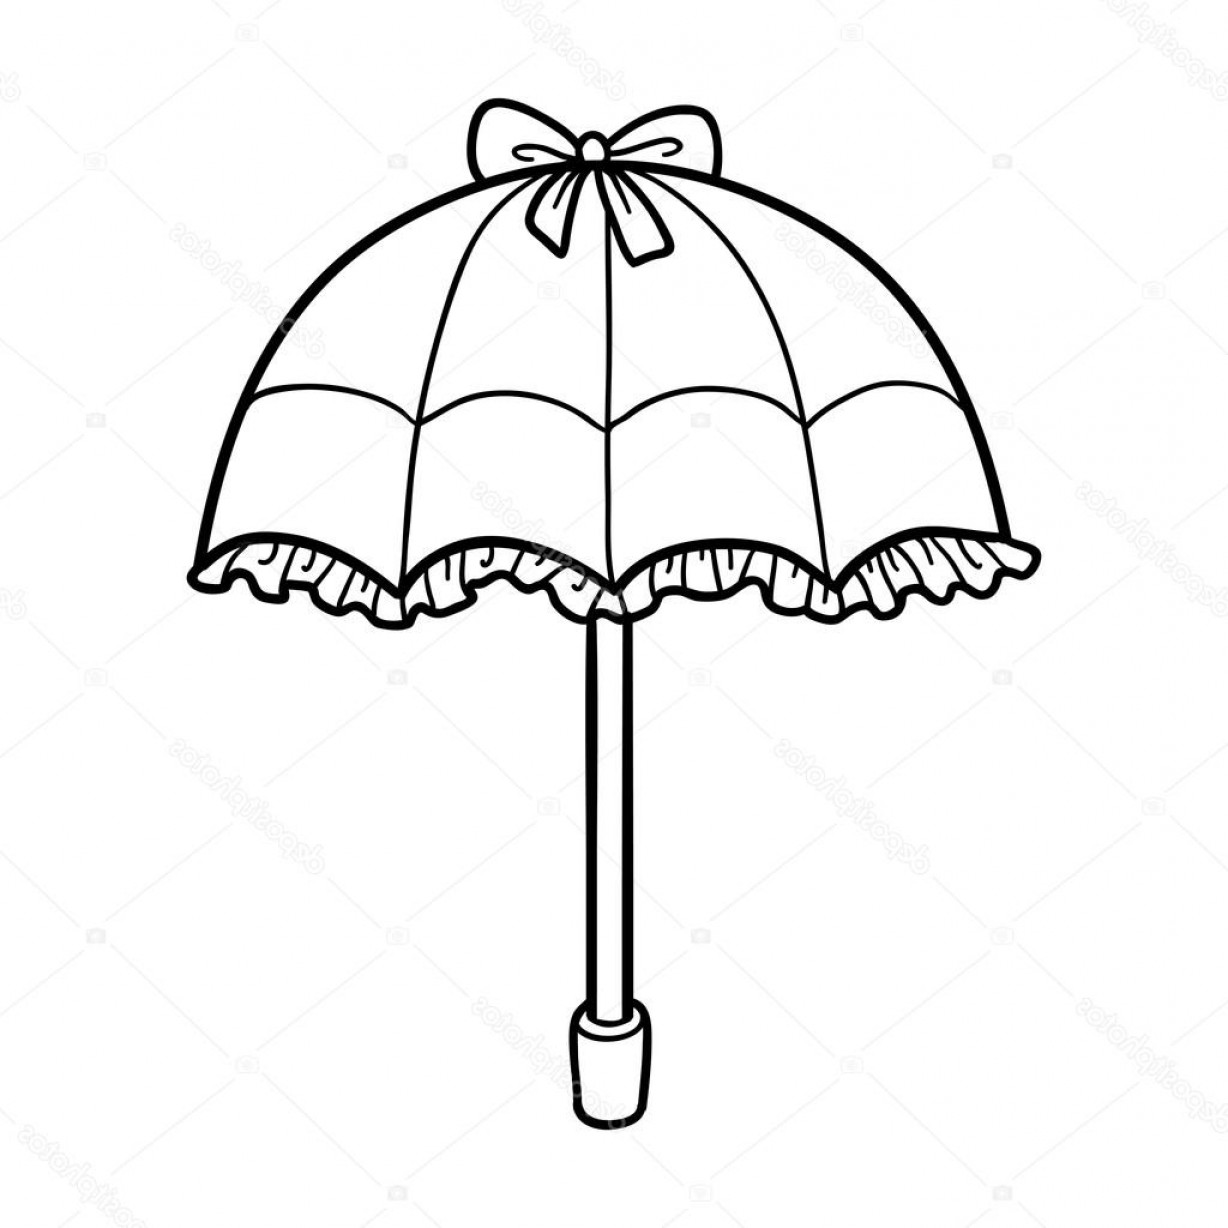 Umbrella Vector Black: Stock Illustration Coloring Book For Children Umbrella